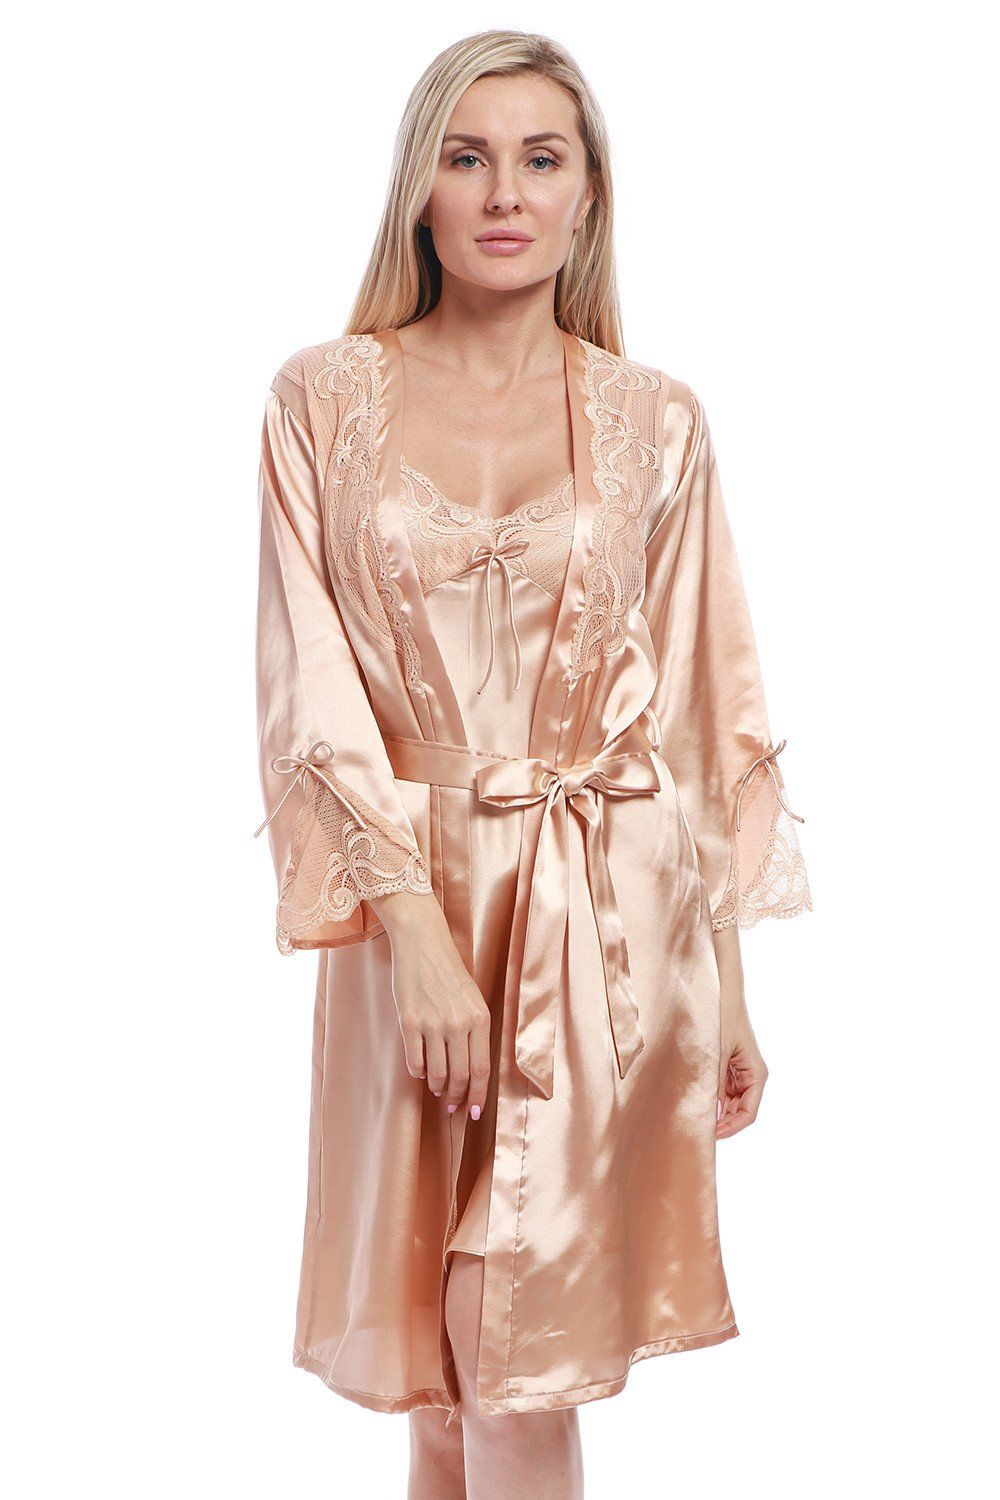 BellisMira Women s Long Satin Robe Bridal Kimono Lace Trim Nightgown Soft  Pajamas Dressing Gown Sleepwear 444f3c7ff